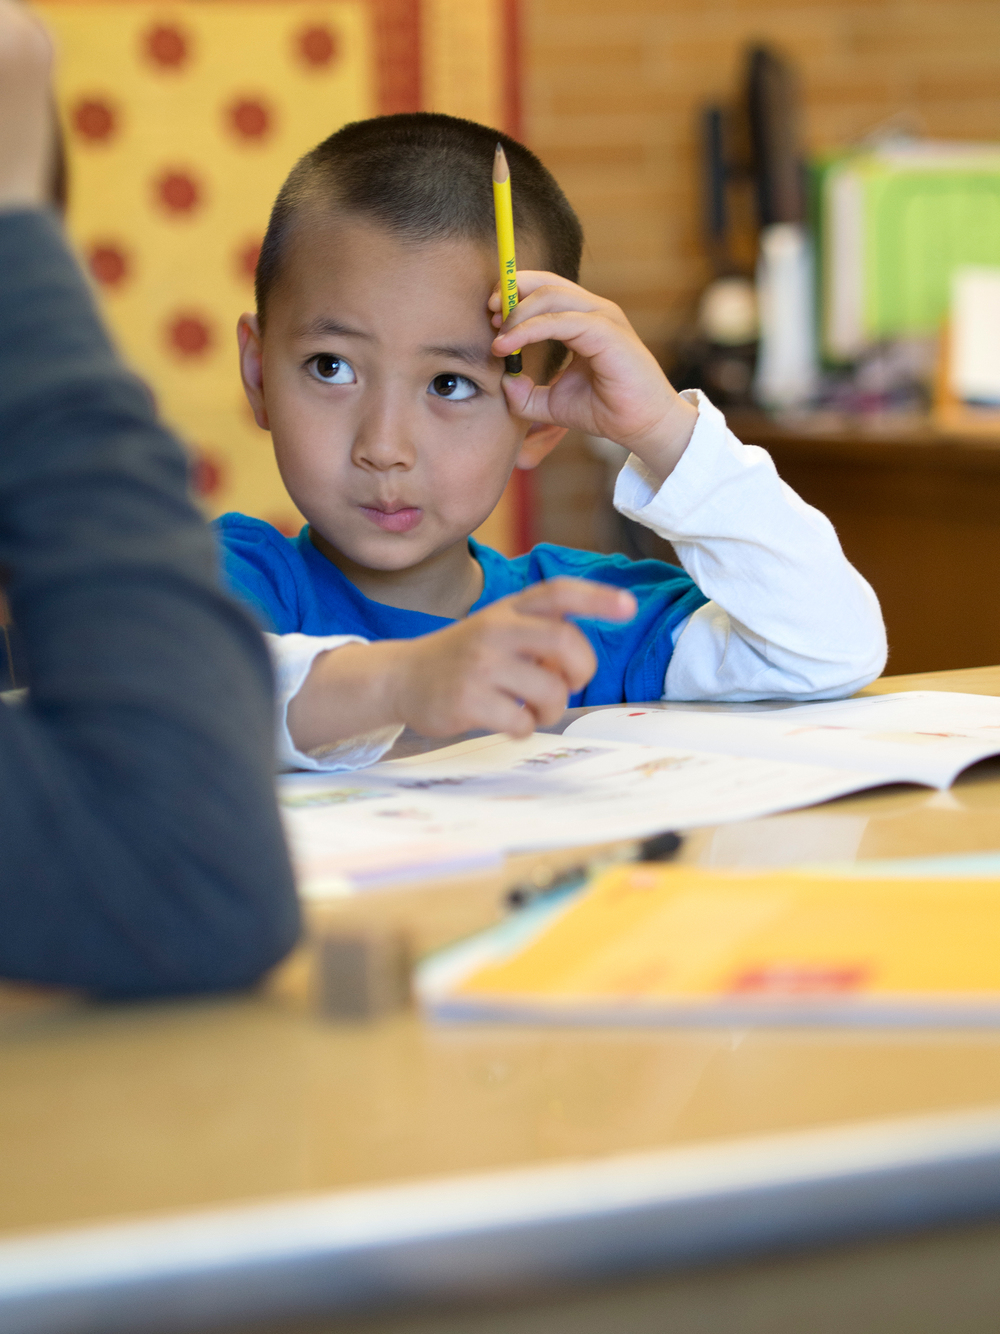 Bilingual student entering kindergarten gets assessed for English language proficiency